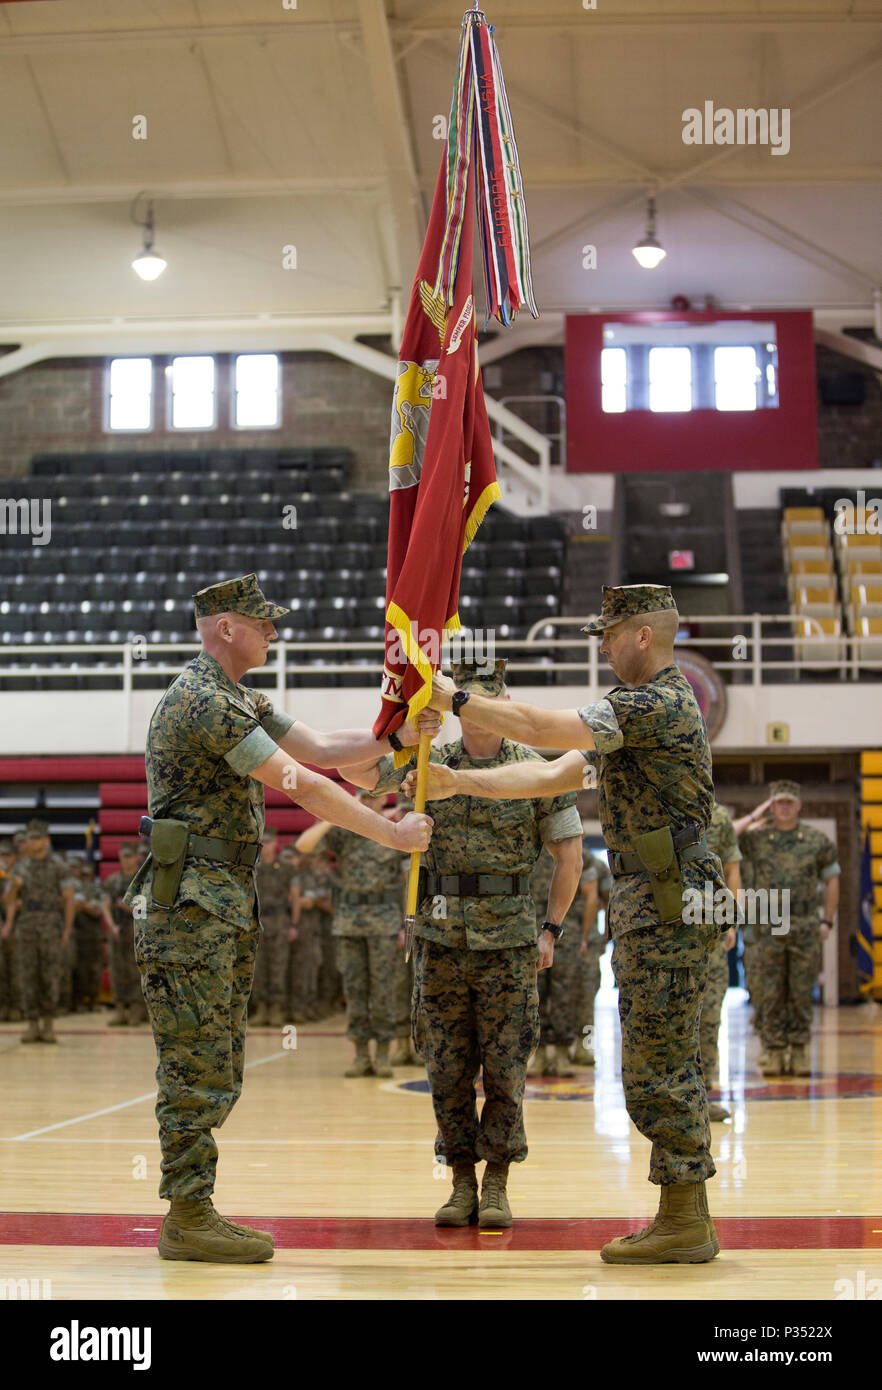 U.S. Marine Corps Lt. Col. Charles D. Nicol, left, incoming commanding officer of 2nd Tank Battalion, 2nd Marine Division, receives the unit colors from Lt. Col. Lance J. Langfeldt, right, outgoing commanding officer of 2nd Tank Battalion, during a change of command ceremony at Camp Lejeune, N.C., June 15, 2018. During the ceremony, Langfeldt relinquished command of the unit to Nicol. (U.S. Marine Corps photo by Cpl. Melanye Martinez) - Stock Image